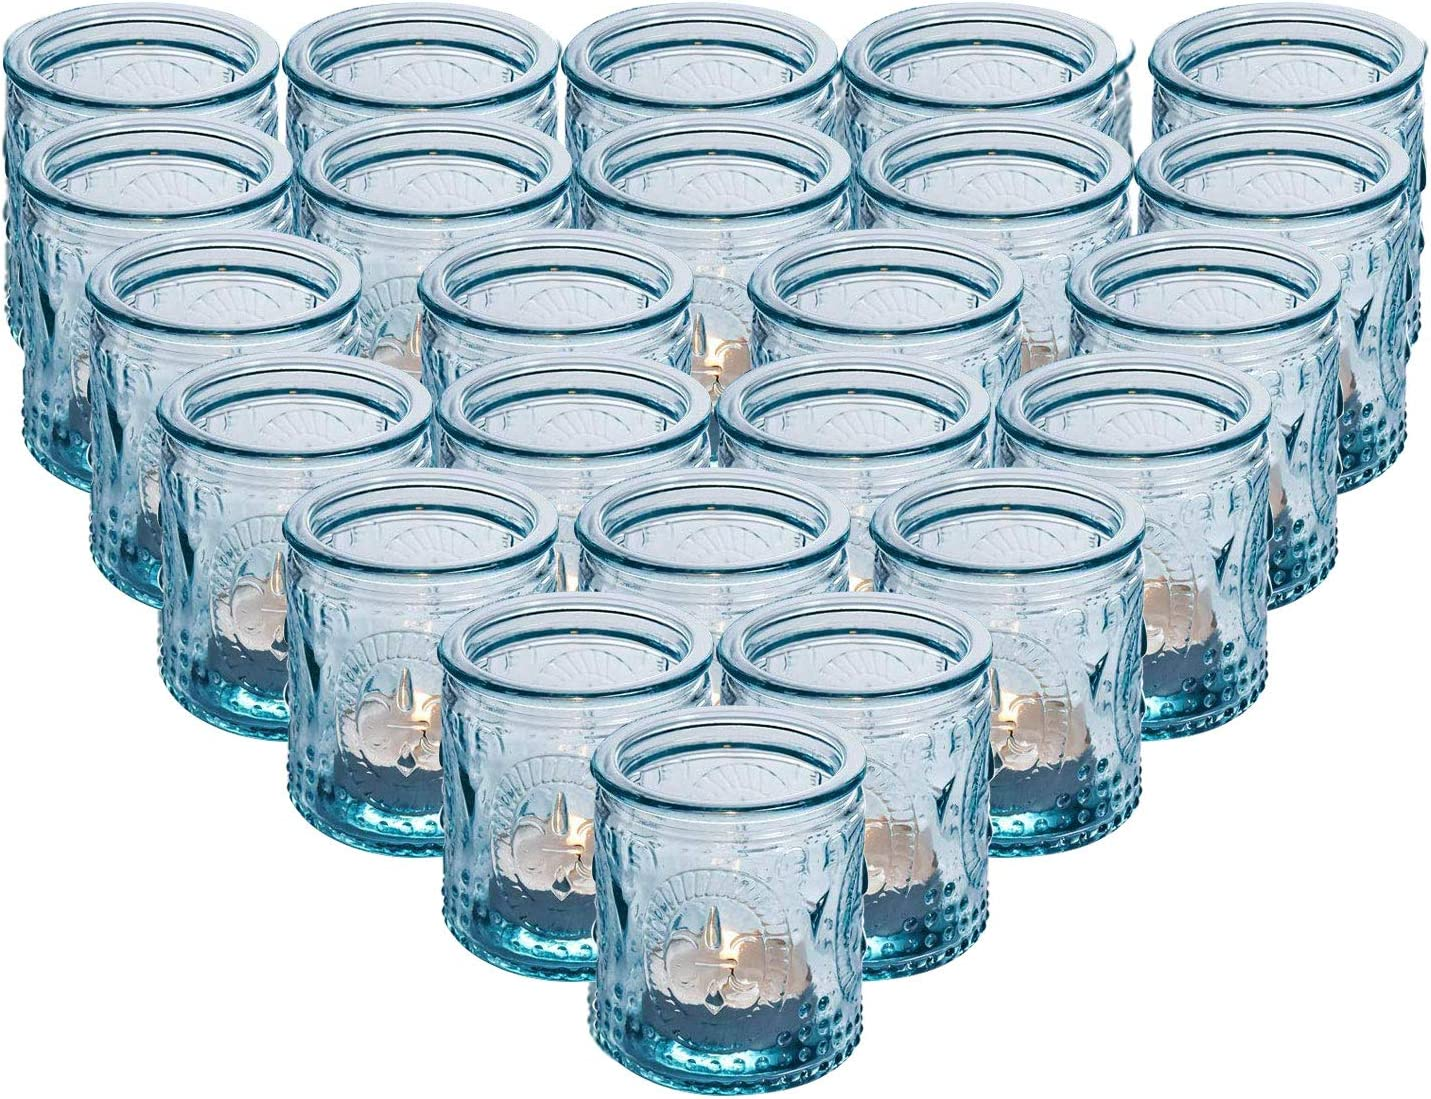 24-Pack Glass Vintage Votive Tealight Candle Holders, Wax Cups - Perfect for Table Centerpieces, Wedding Decor, Home Decor, Bridal Shower, Dinner Party, Outdoor Patio, Kitchen, Bedroom and Holidays